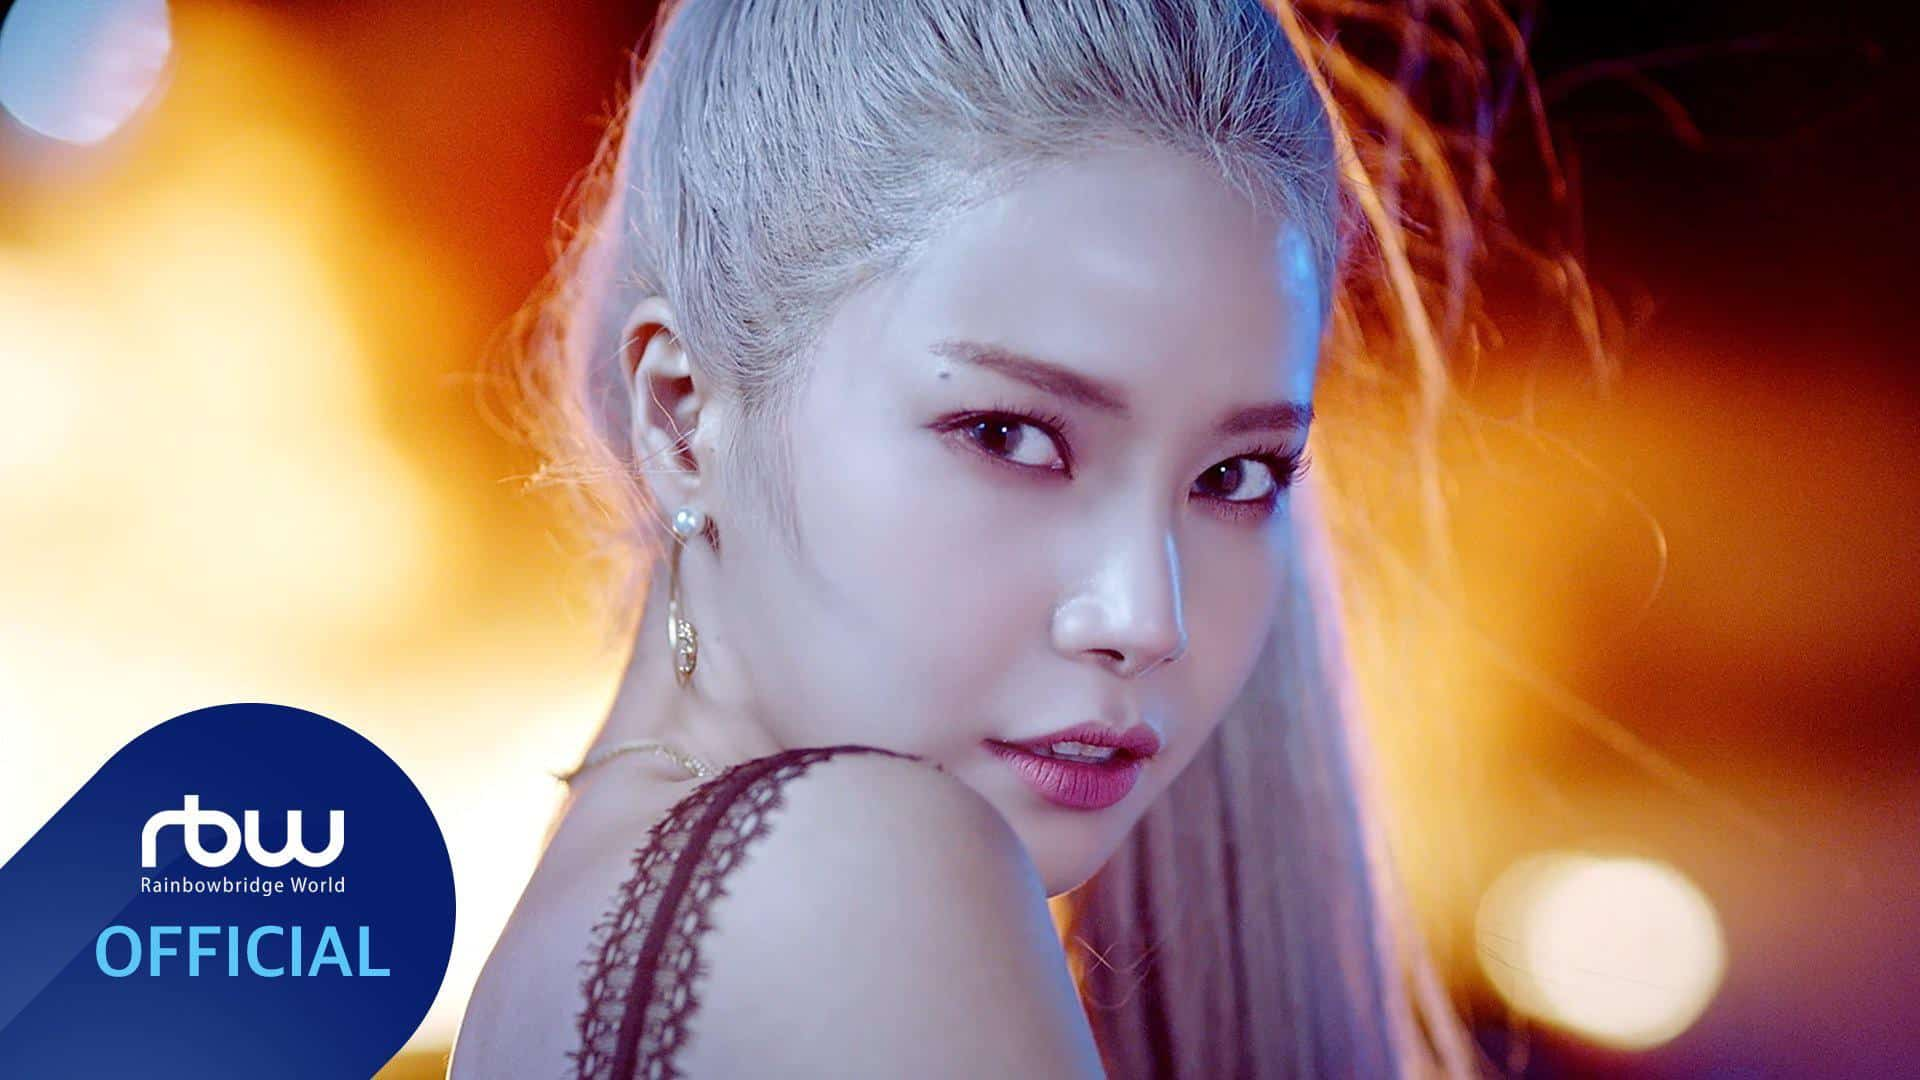 "MAMAMOO Solar Ranked Top on the new song 'SPIT IT OUT' Chart Mamamoo's Solar has made her ""hot"" debut as a solo artist. Solar has been receiving enthusiastic responses since she first released the title track ""Spit Out"" of her first single album ""SPIT IT OUT"" on Mnet's ""M Countdown"" on Sunday. On the same day, Solar presented her fantastic solo debut stage with a purple outfit plus orange nail tip's point. Despite her colorful and captivating performance, Solar showed off her outstanding singing skills and stage manners, showing off the figure of the legendary ""Performance Queen."" Especially in the killing part ""set fire,"" Solar quickly emerged as a hot topic for her point choreography, which seemed to be blowing a match light. After the broadcast, the stage and fancam videos have garnered more than 220,000 views, igniting the popularity of solo Also, ""SPIT IT OUT"" occupies the top spot on the nation's major music charts. In addition, the music video for ""SPIT IT OUT"" topped YouTube's Worldwide trending list and boasted a powerful global influence, with Mamamoo re-entering 27th on the U.S. Billboard Social 50 chart in line with Solar's solo debut. As such, Solar has given a green light to her first solo career, wrapping up her successful debut ceremony with ""spit out."" His solo debut song ""SPIT IT OUT"" is a song that expresses his confident and confident appearance with a message that he should not be bound by other people's standards and spit out what he wants to say and do without hesitation. Trans sound is impressive on an energetic beat. Meanwhile, Solar will appear on KBS 2TV's ""Music Bank"" today (24th) to continue her solo debut song ""SPIT IT OUT."""